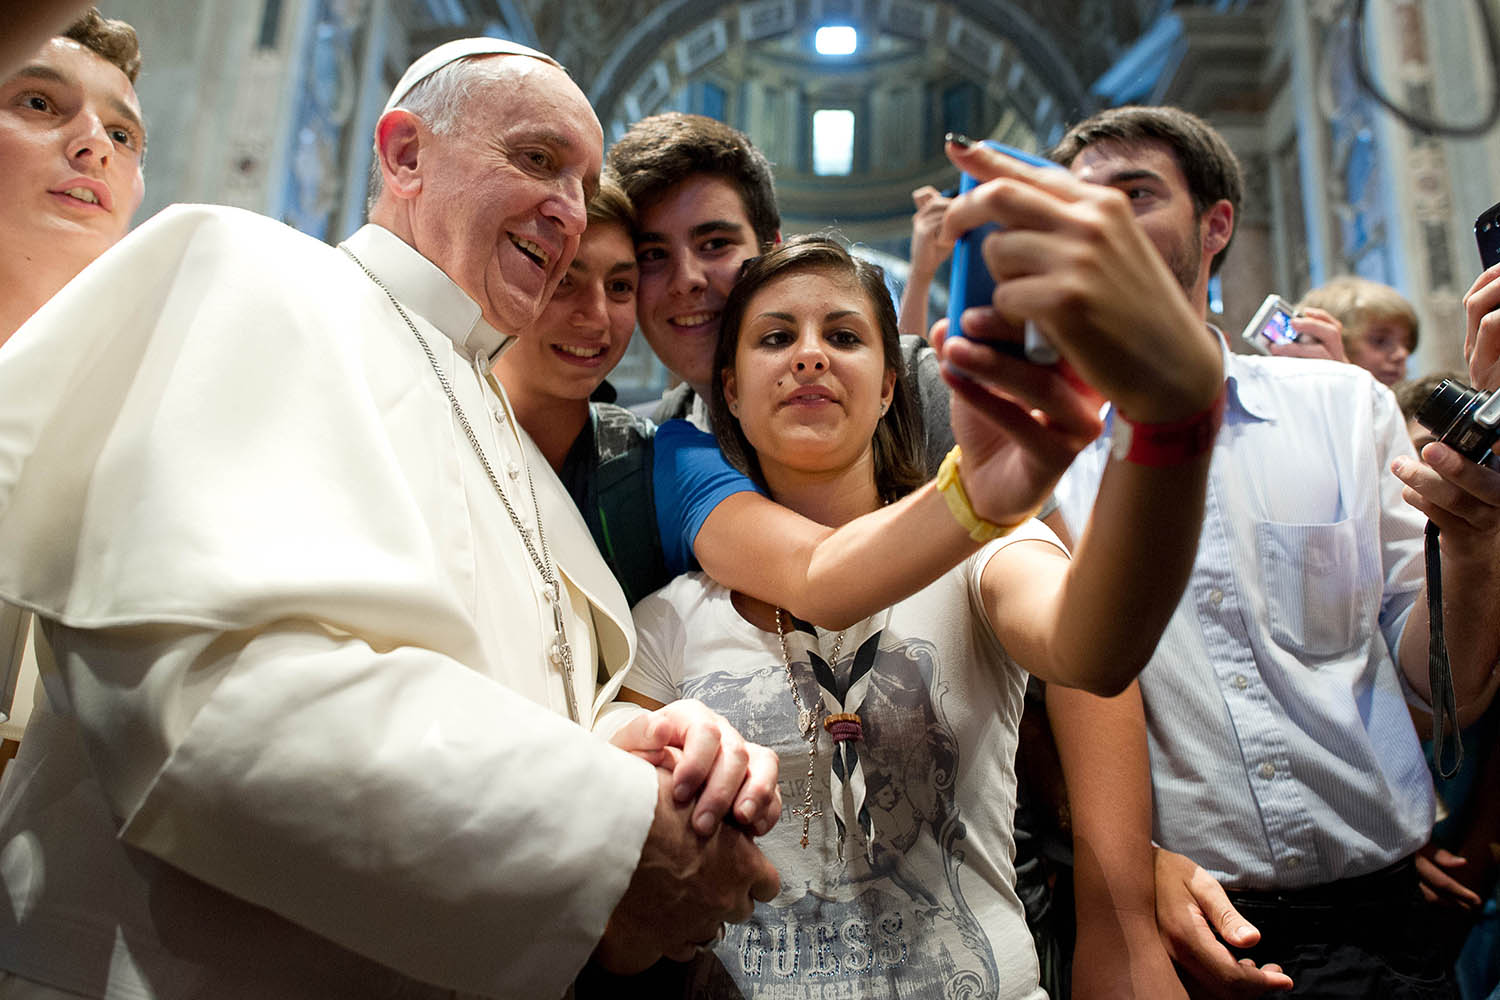 Aug. 28, 2013. In this photo provided by the Vatican newspaper L'Osservatore Romano, Pope Francis has his picture taken inside St. Peter's Basilica with youths from the Italian Diocese of Piacenza and Bobbio who came to Rome for a pilgrimage at the Vatican.